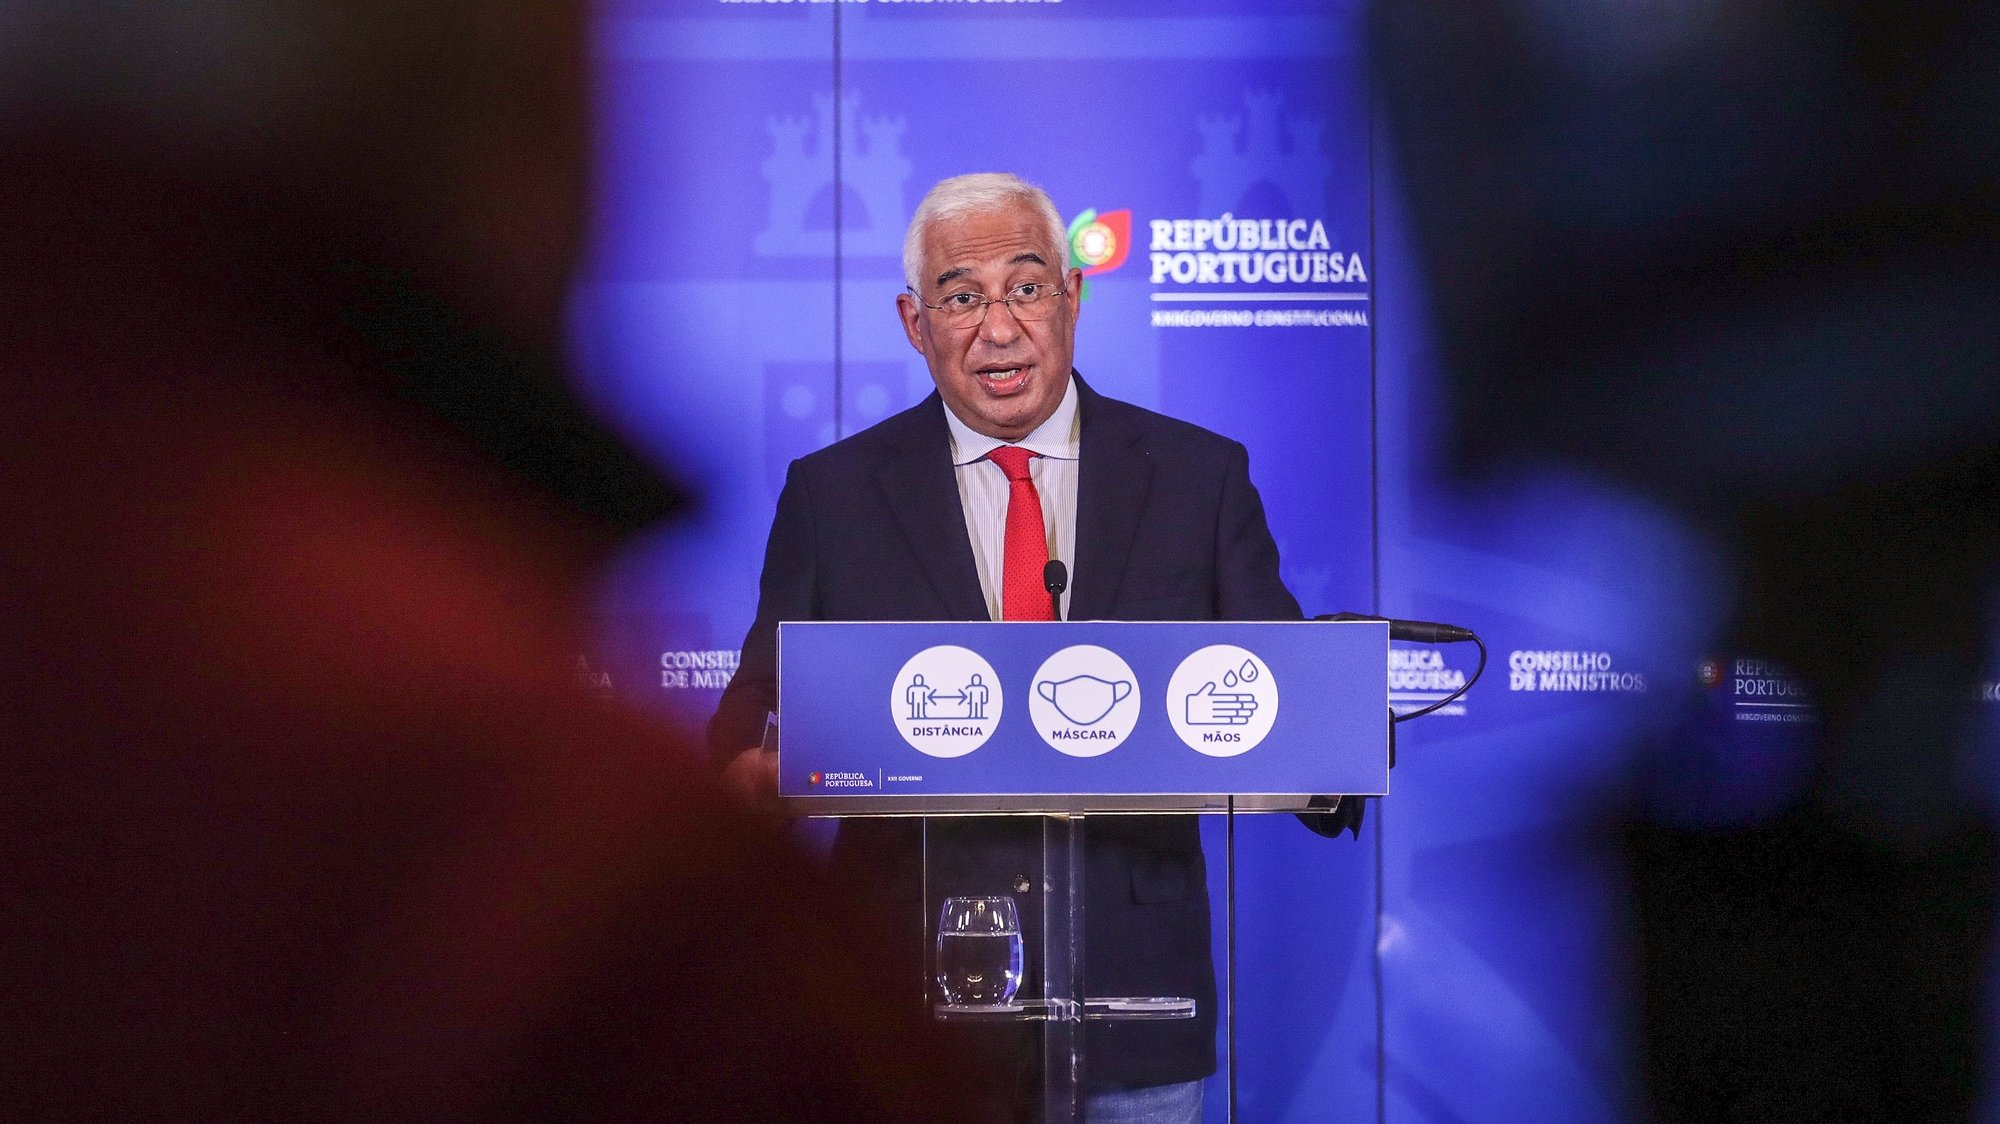 epa08864255 Portuguese Prime Minister Antonio Costa during the announcement of new restrictive measures for the Christmas season in the fight against the Covid-19 pandemic in the country, in Lisbon, Portugal, 05 December 2020.  EPA/TIAGO PETINGA